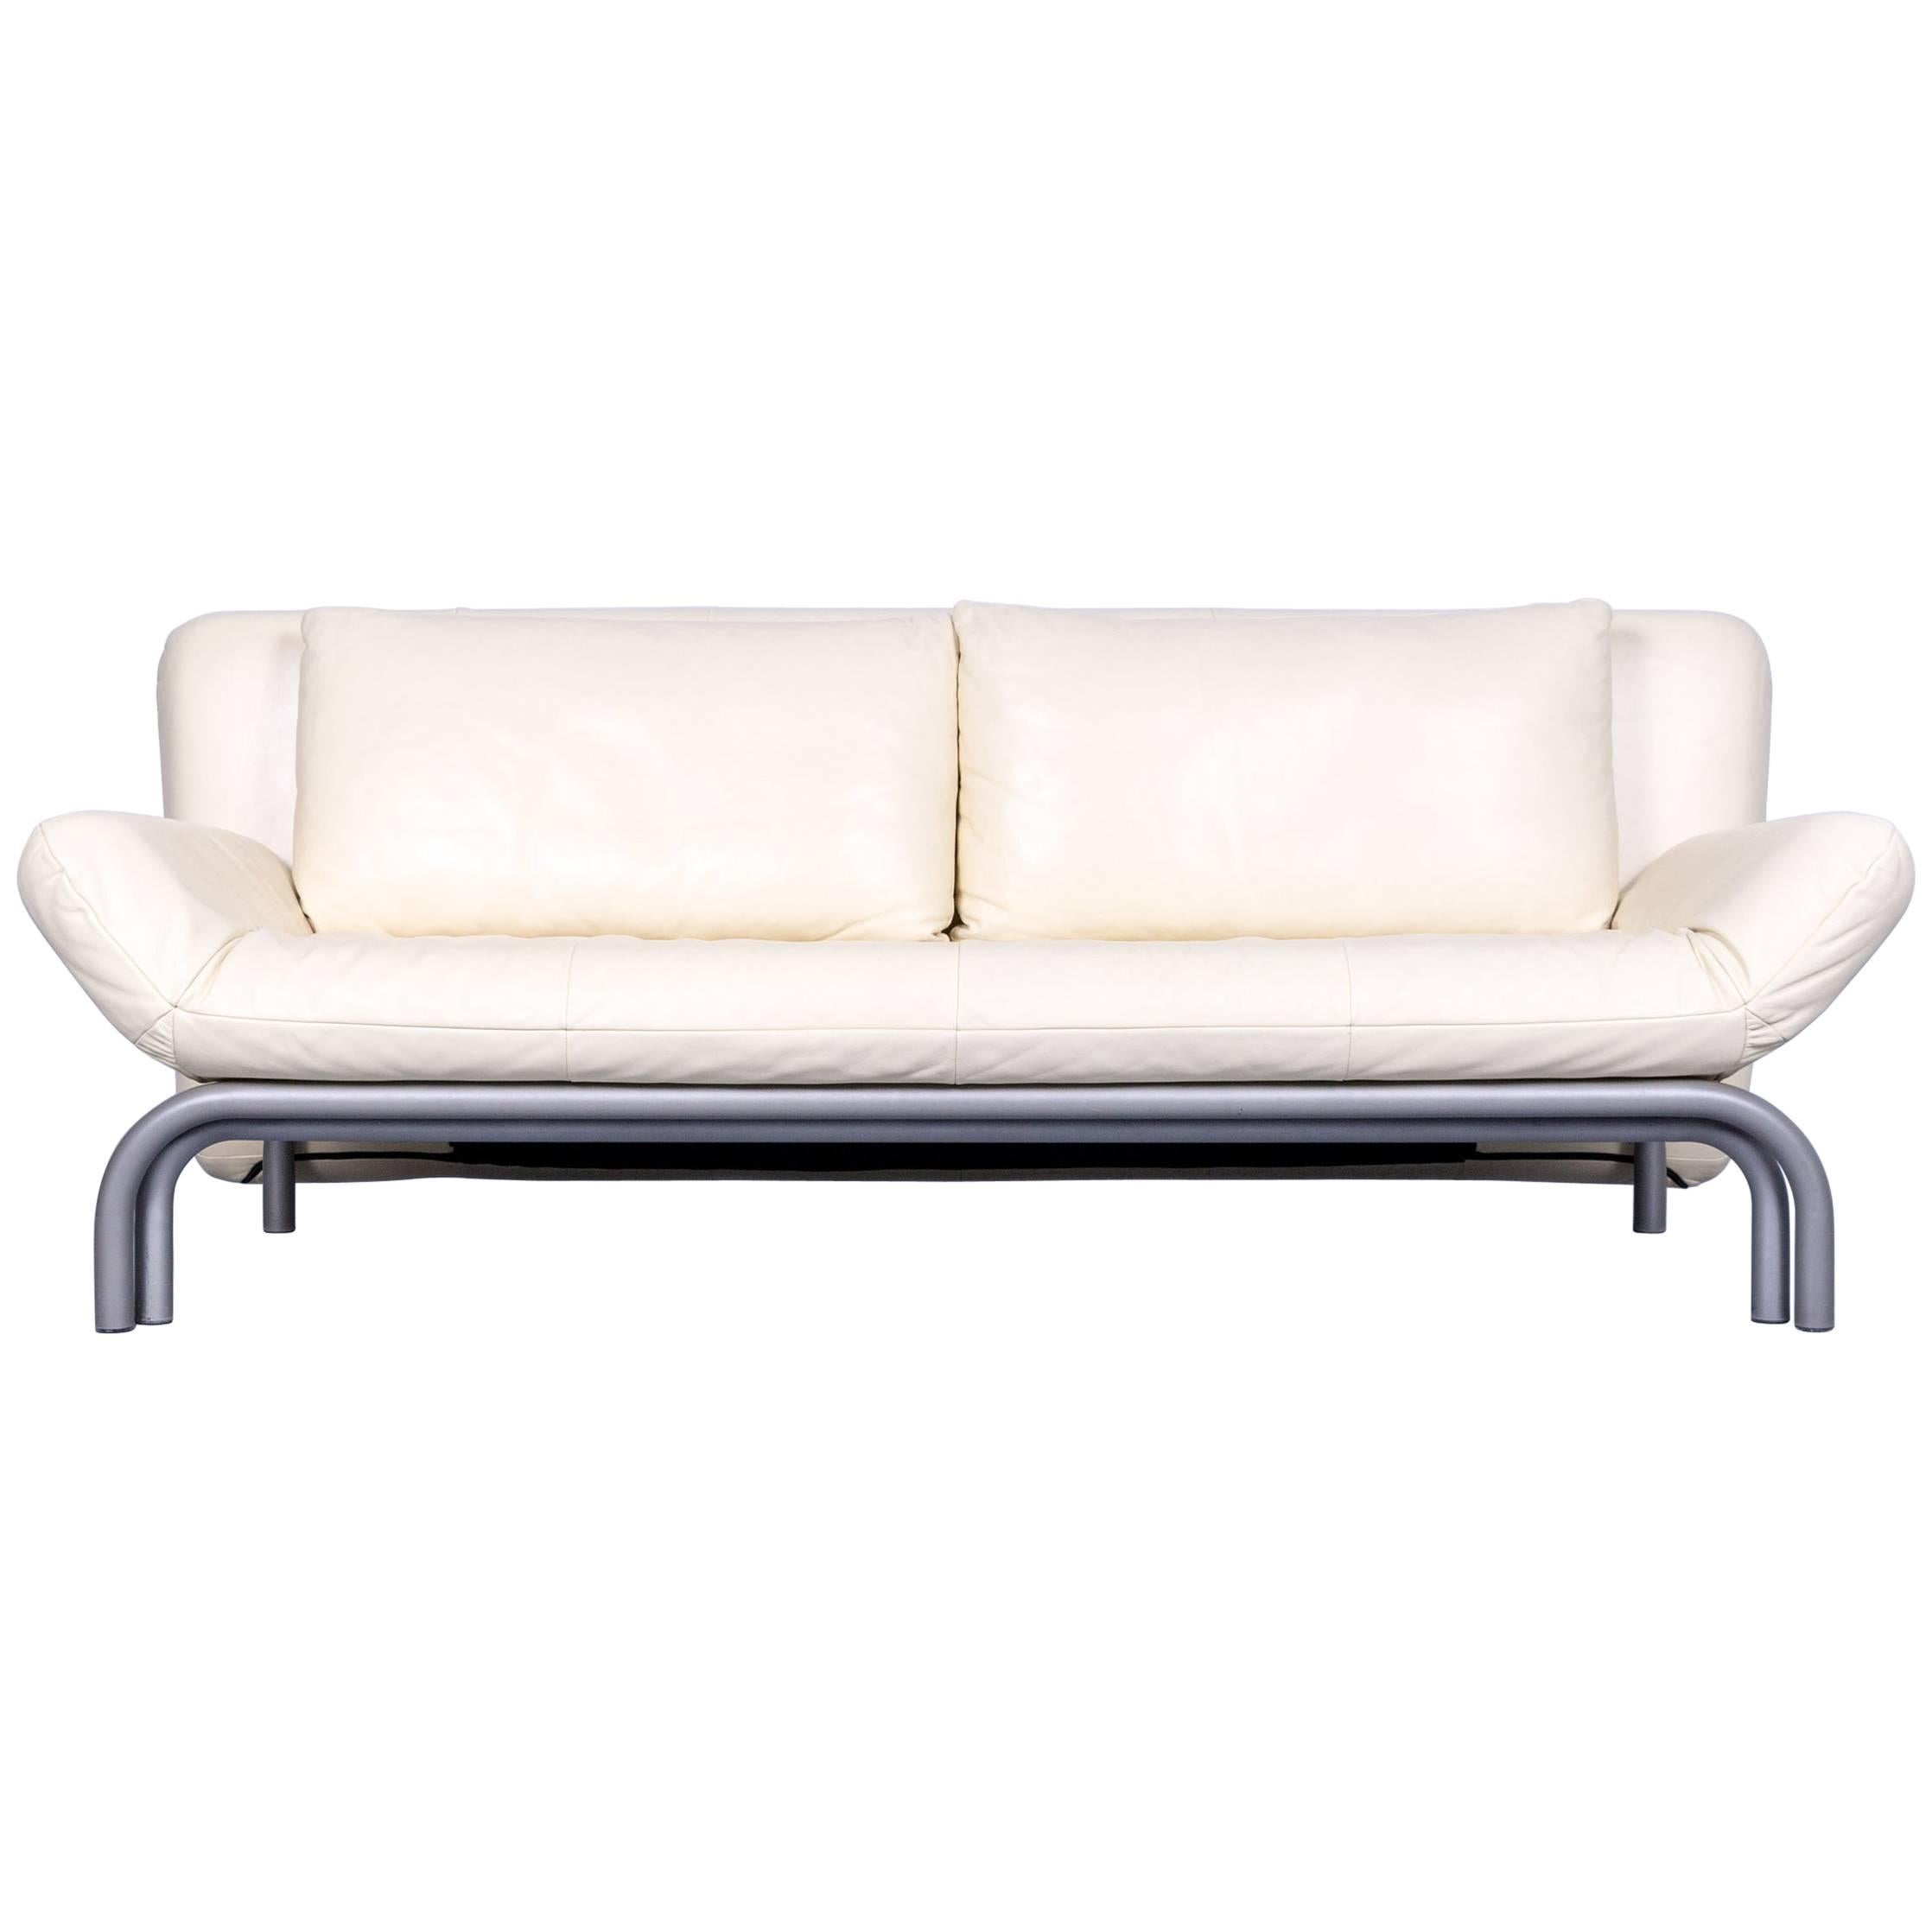 Sofa Nova Rolf Benz Perfect Rolf Benz Nova With Sofa Nova Rolf Benz